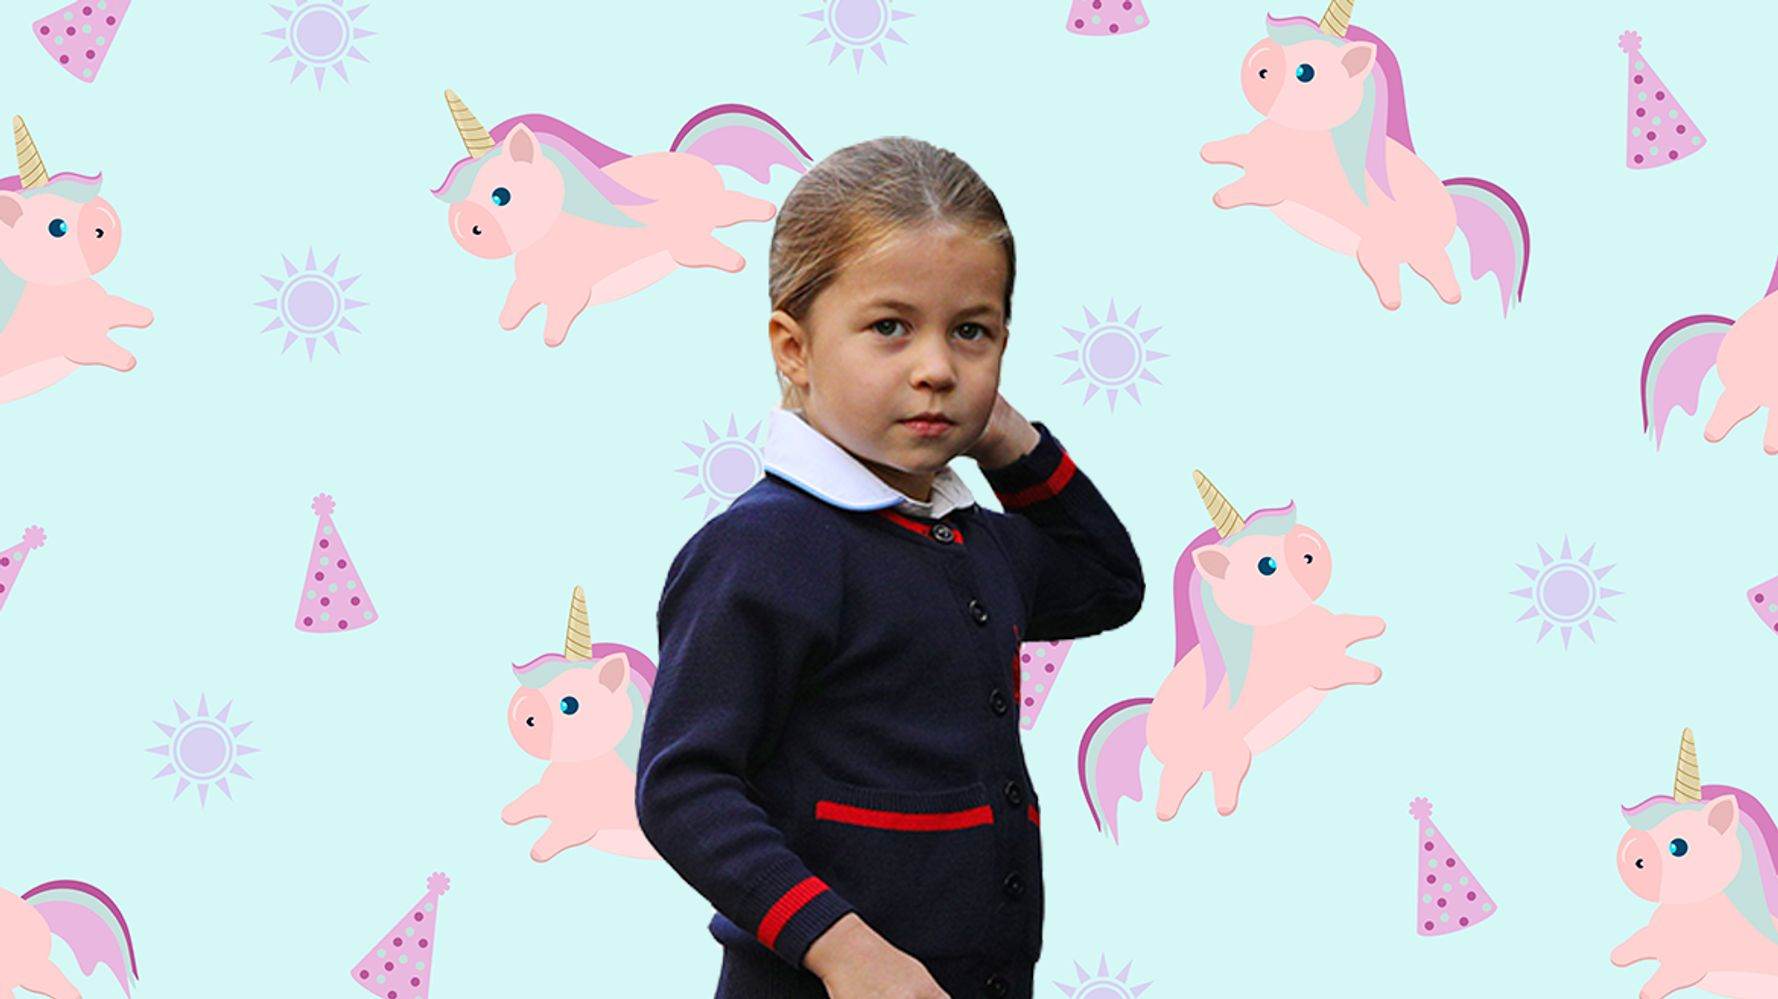 Princess Charlotte 'Loves Unicorns, Loves Them' – Here Are 5 Toys She'd Adore